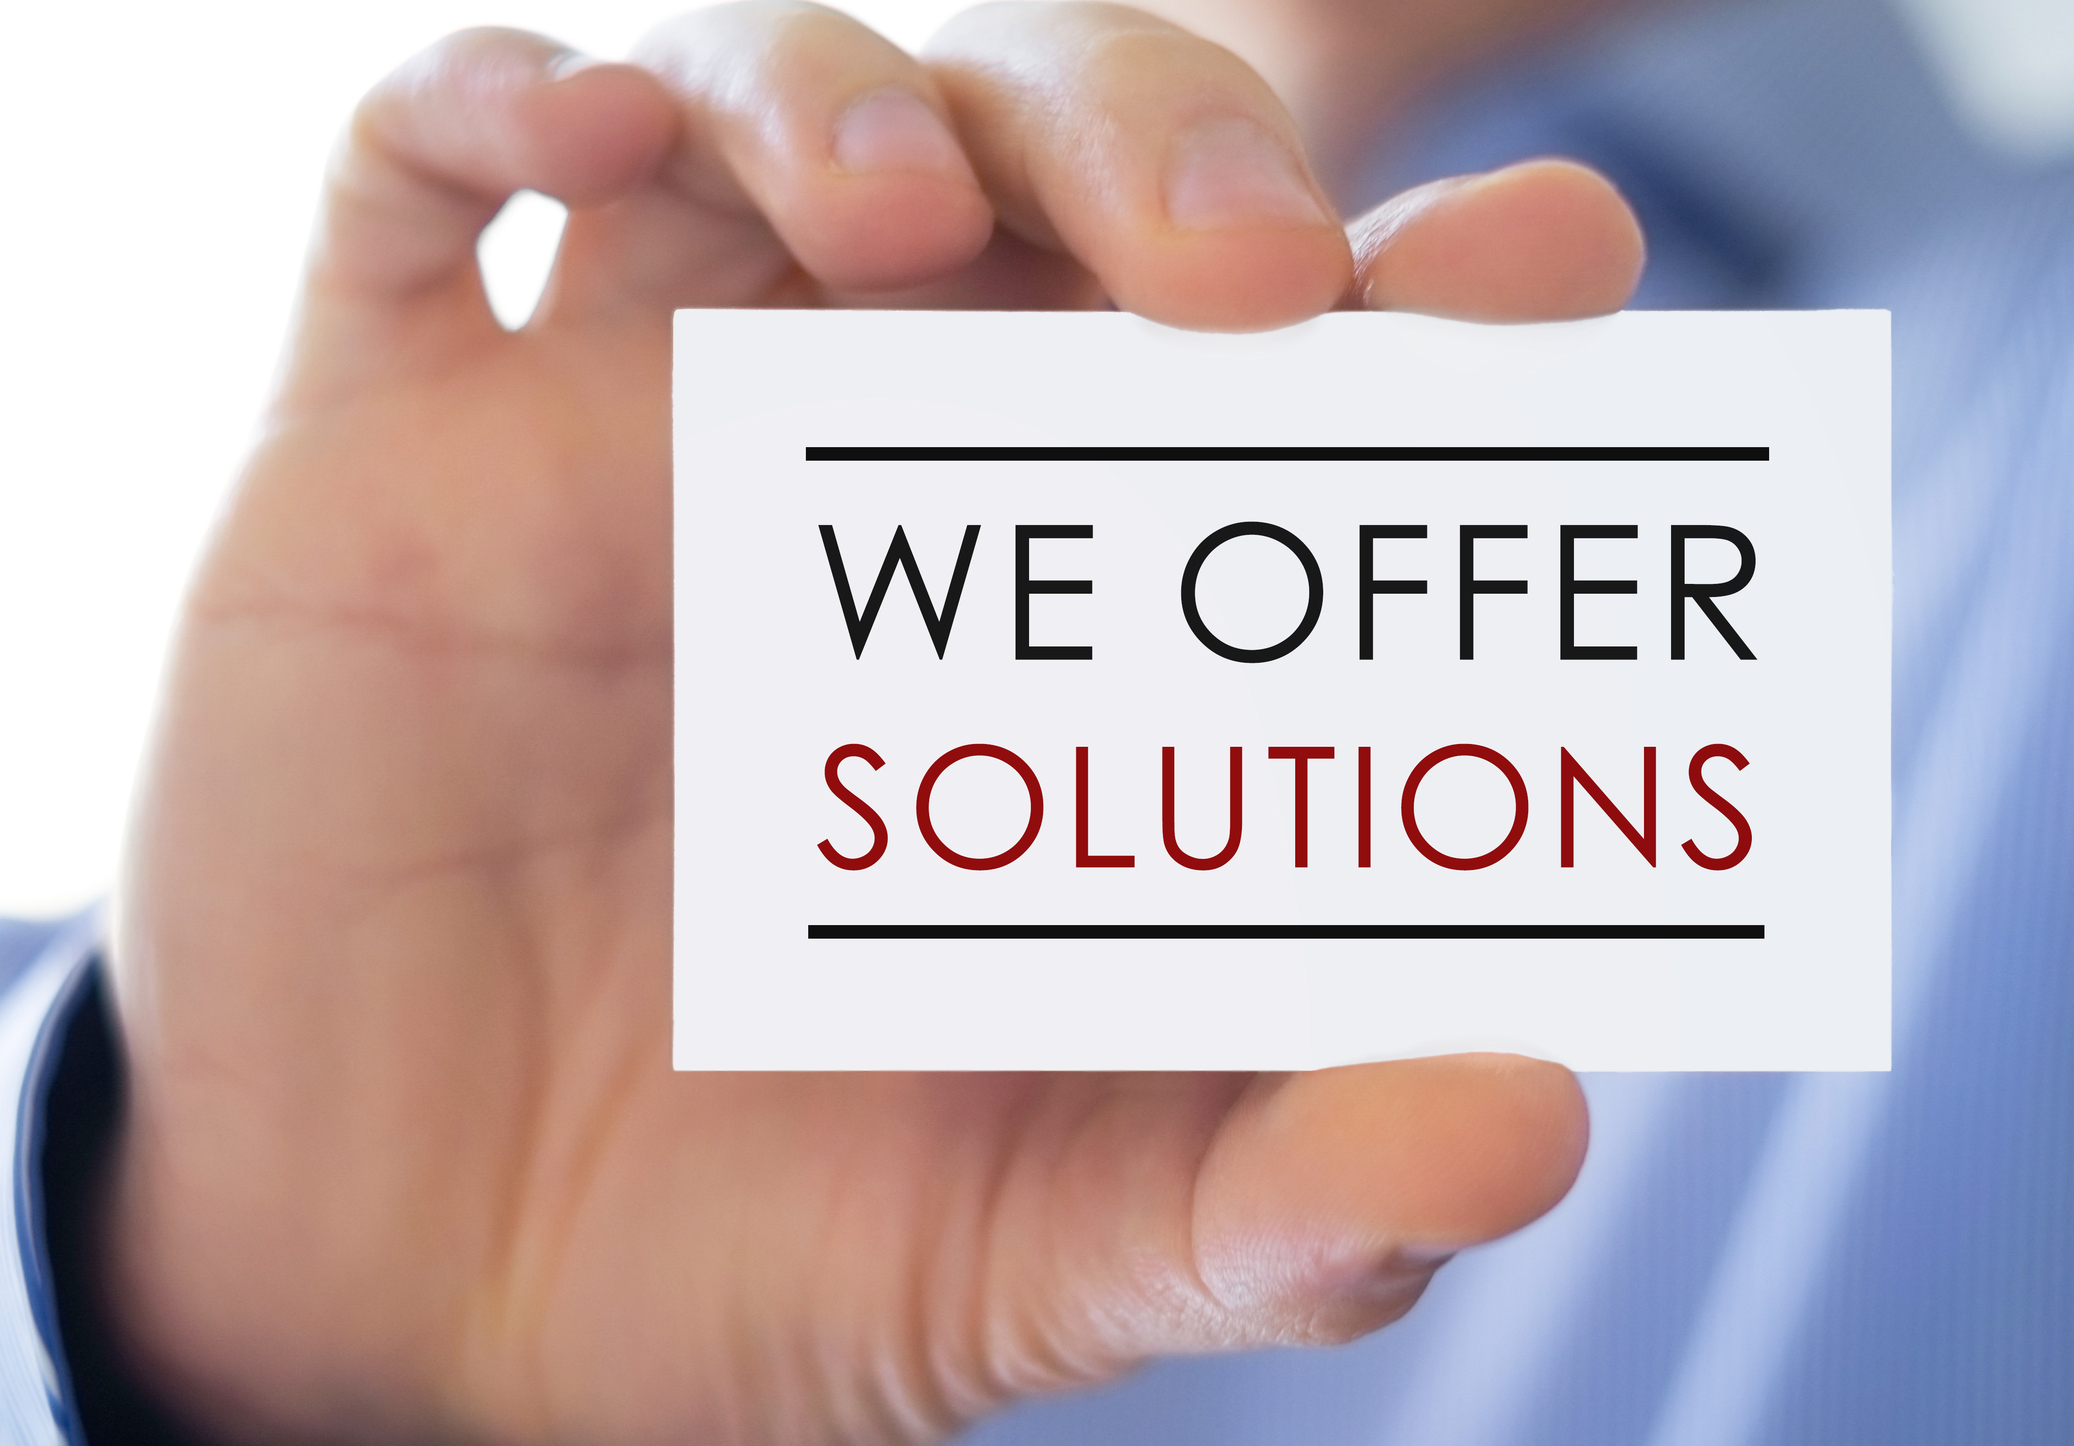 image of man holding we offer solutions card sign